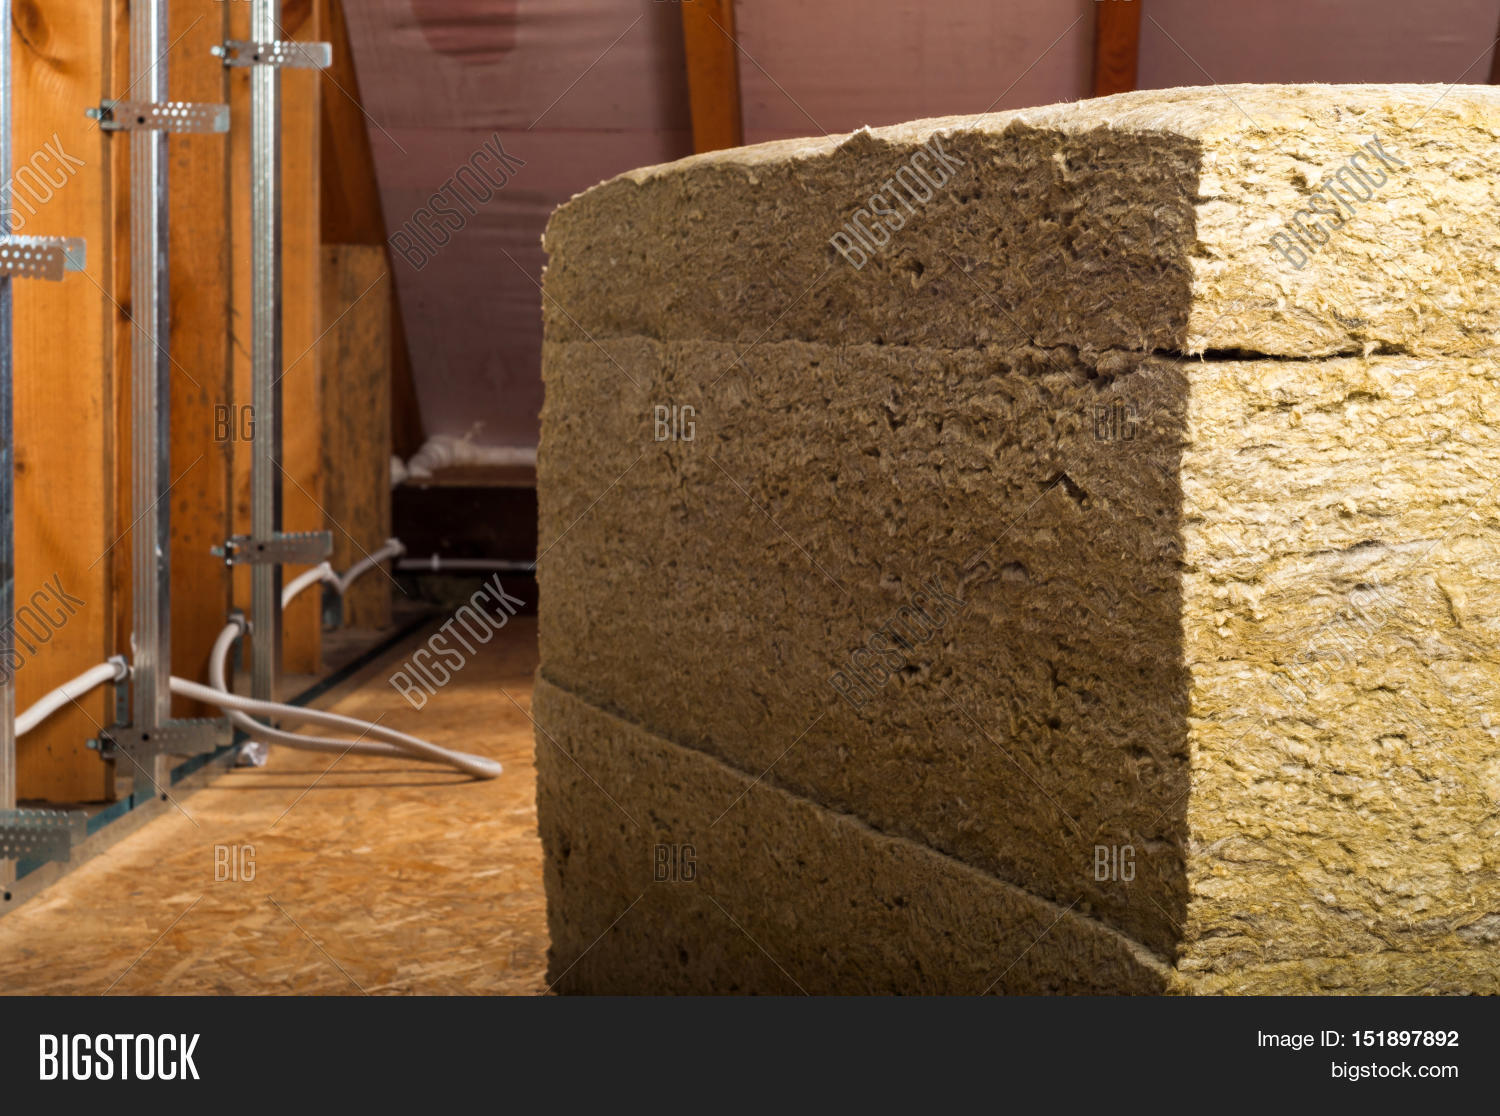 Rockwool attic insulation images for Wool house insulation